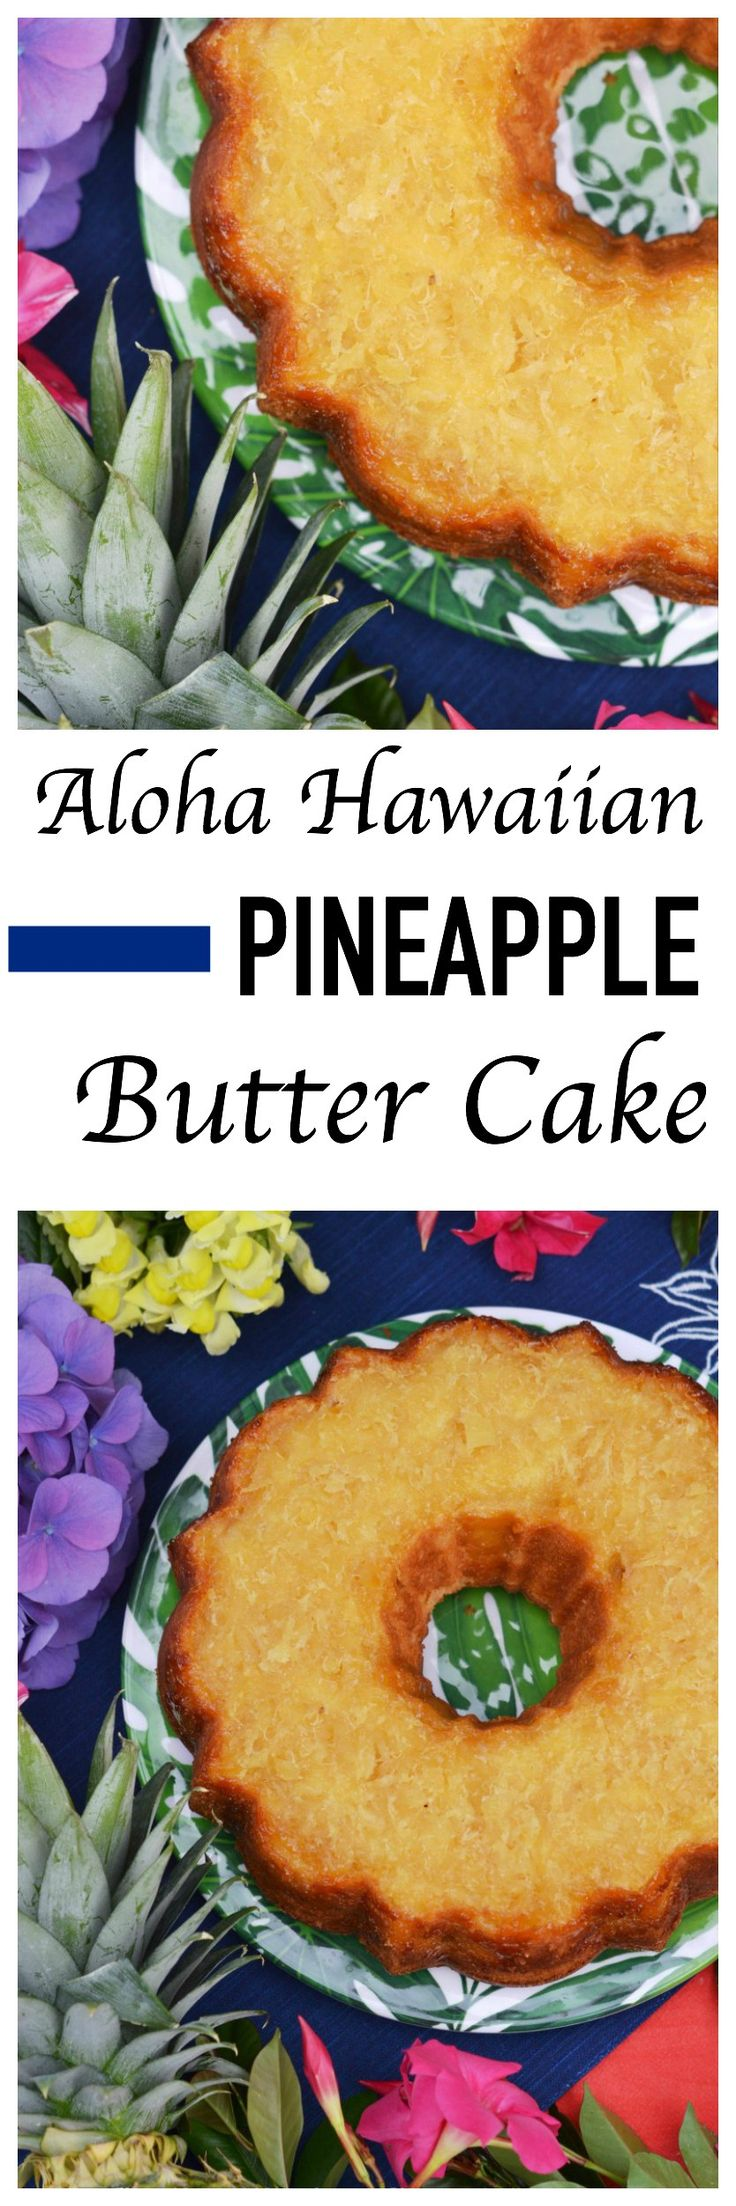 Aloha. The sweet pineapple and decadent butter flavoring in this tropical Bundt cake truly make you feel like you have arrived in a Hawaiian paradise.